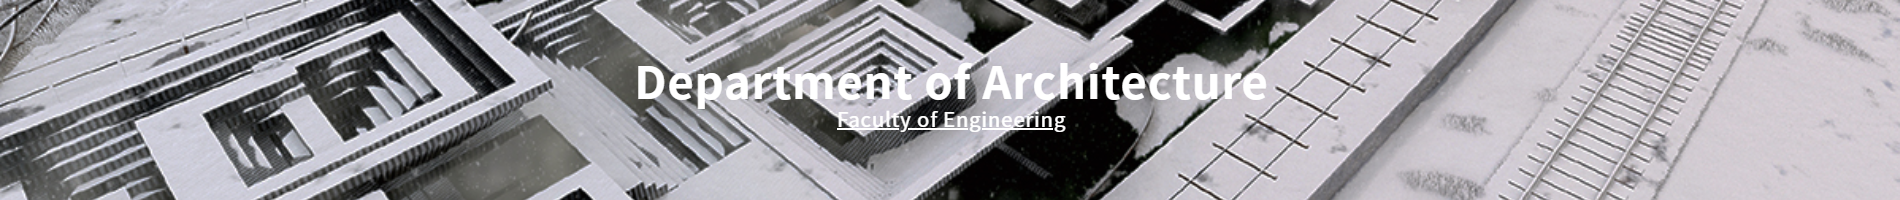 Department of Architect